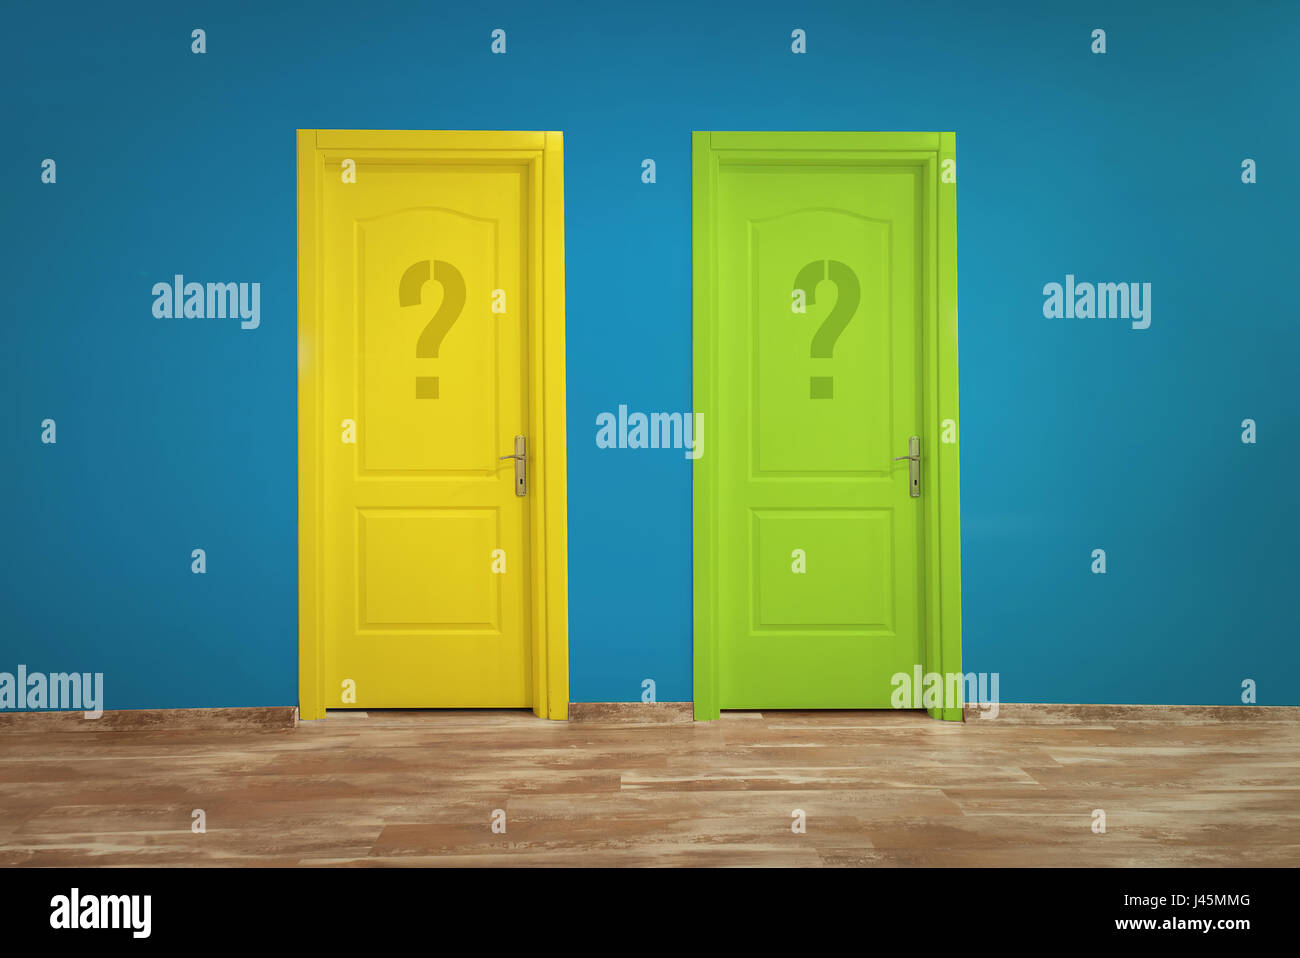 Choice concept with colorful doors - Stock Image